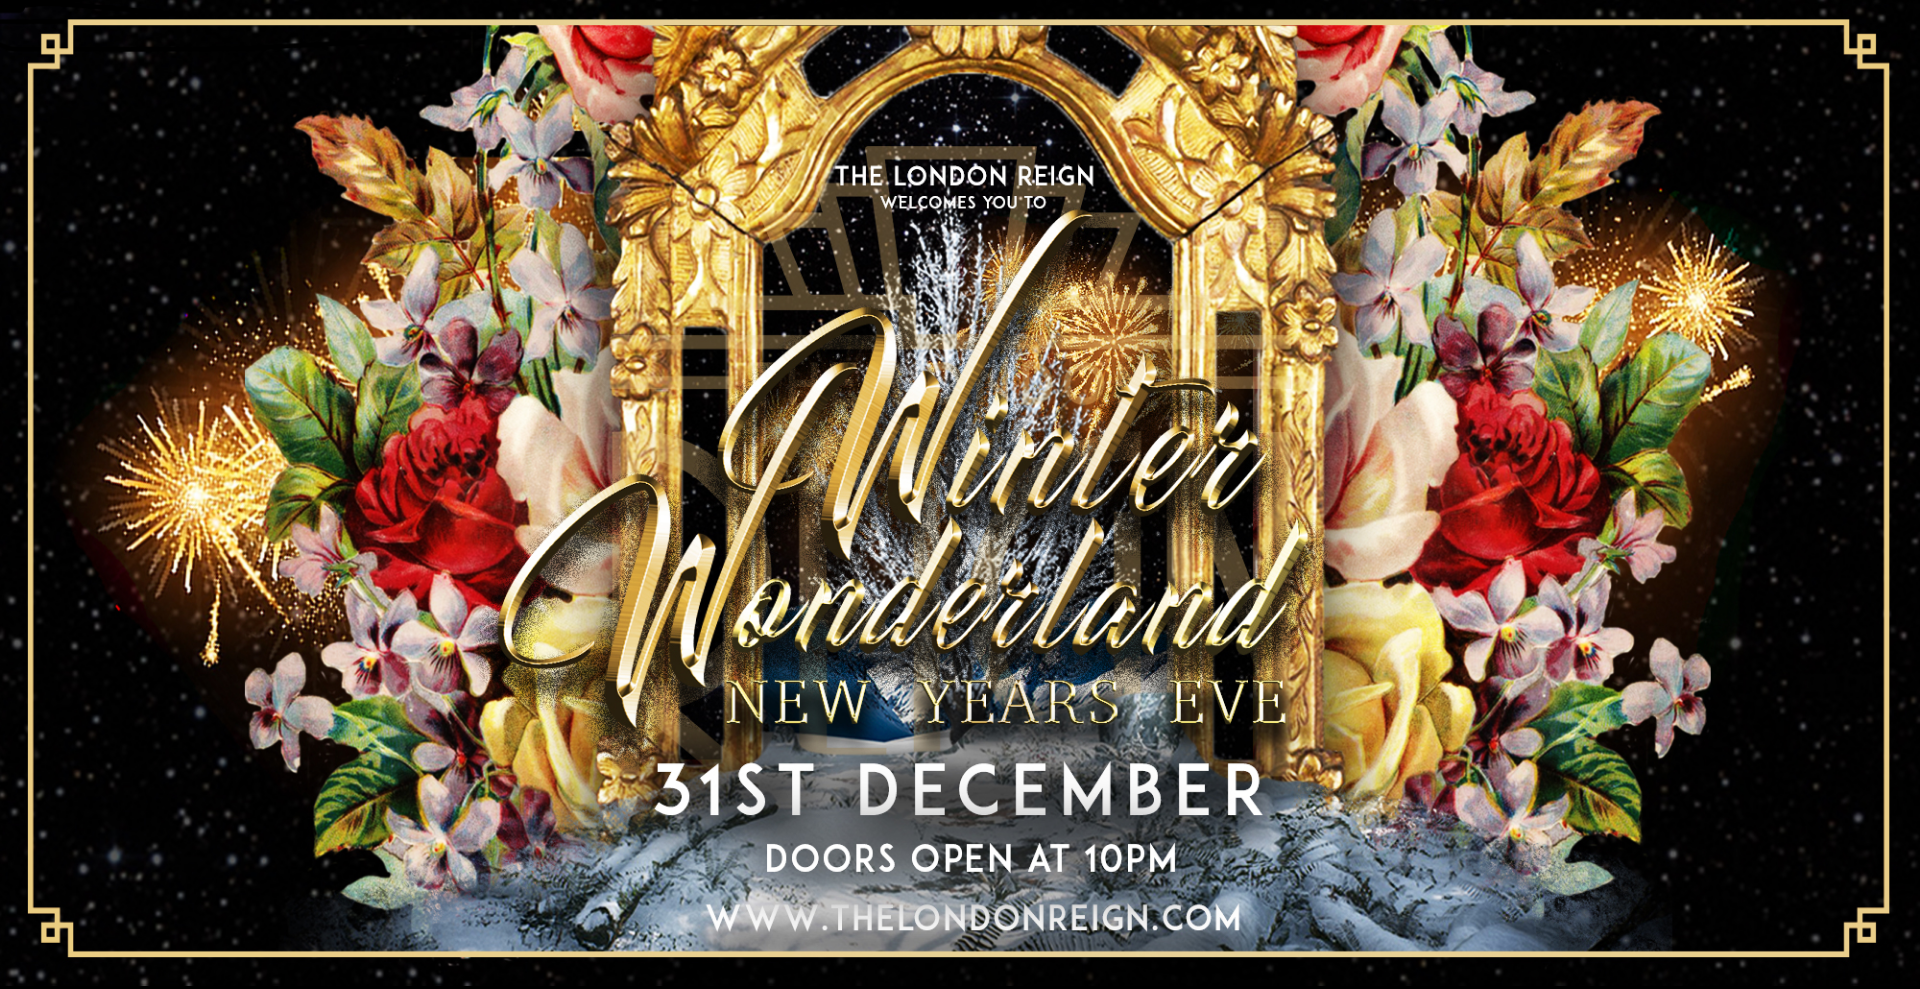 The London Reign Presents New Years Eve in Winter Wonderland.